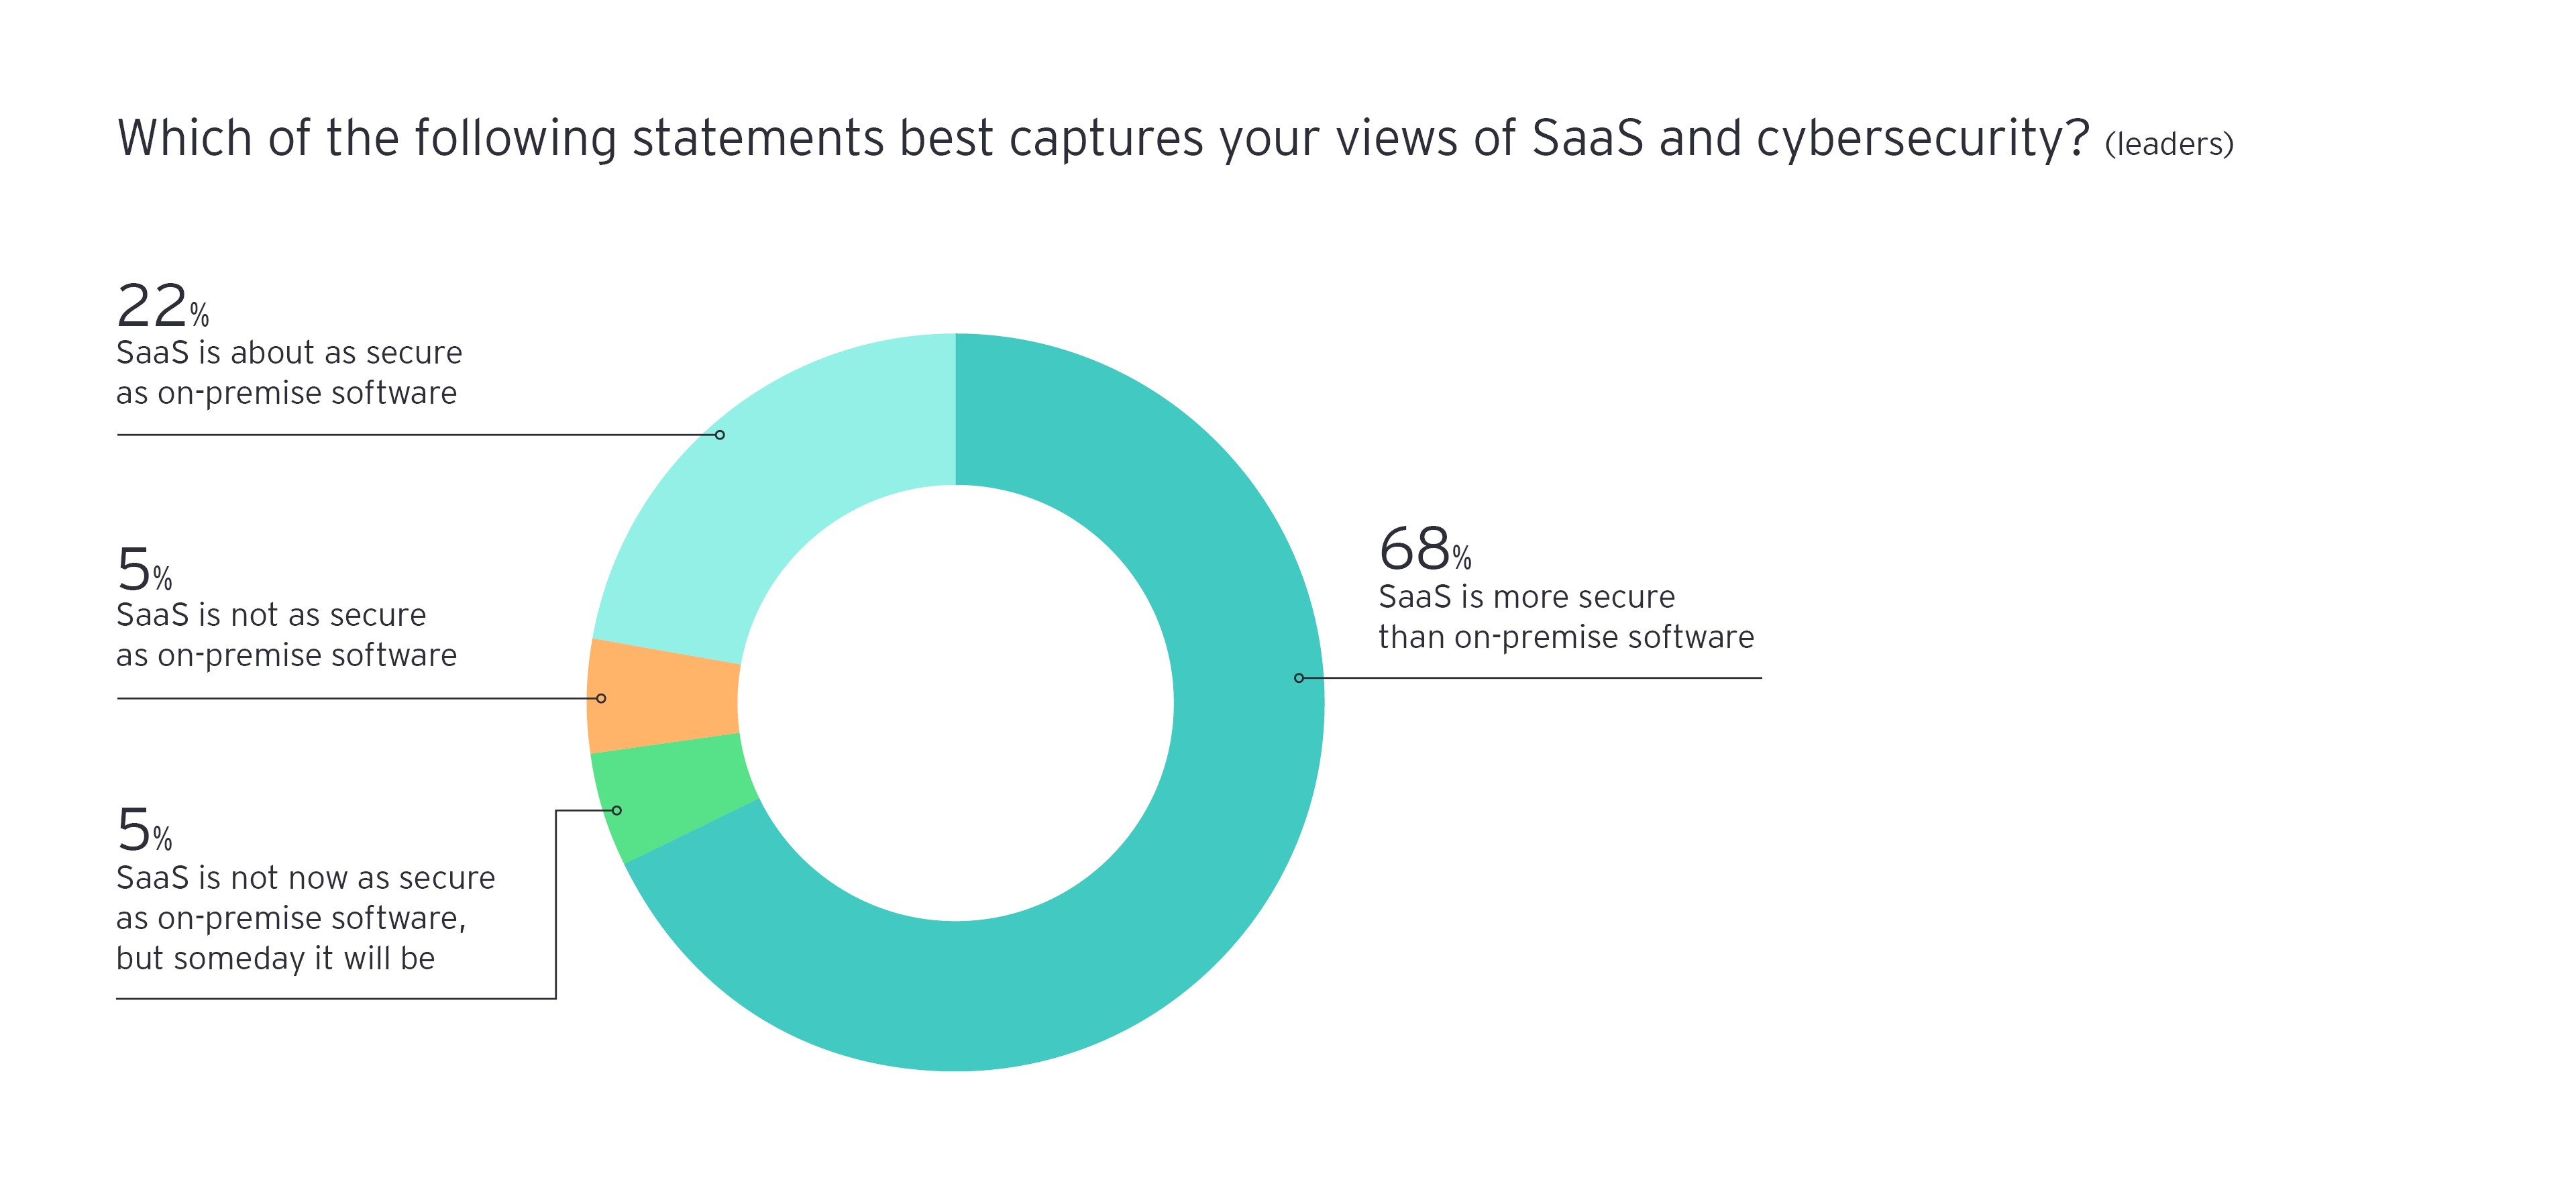 Which of the following captures views of SaaS and cybersecurity